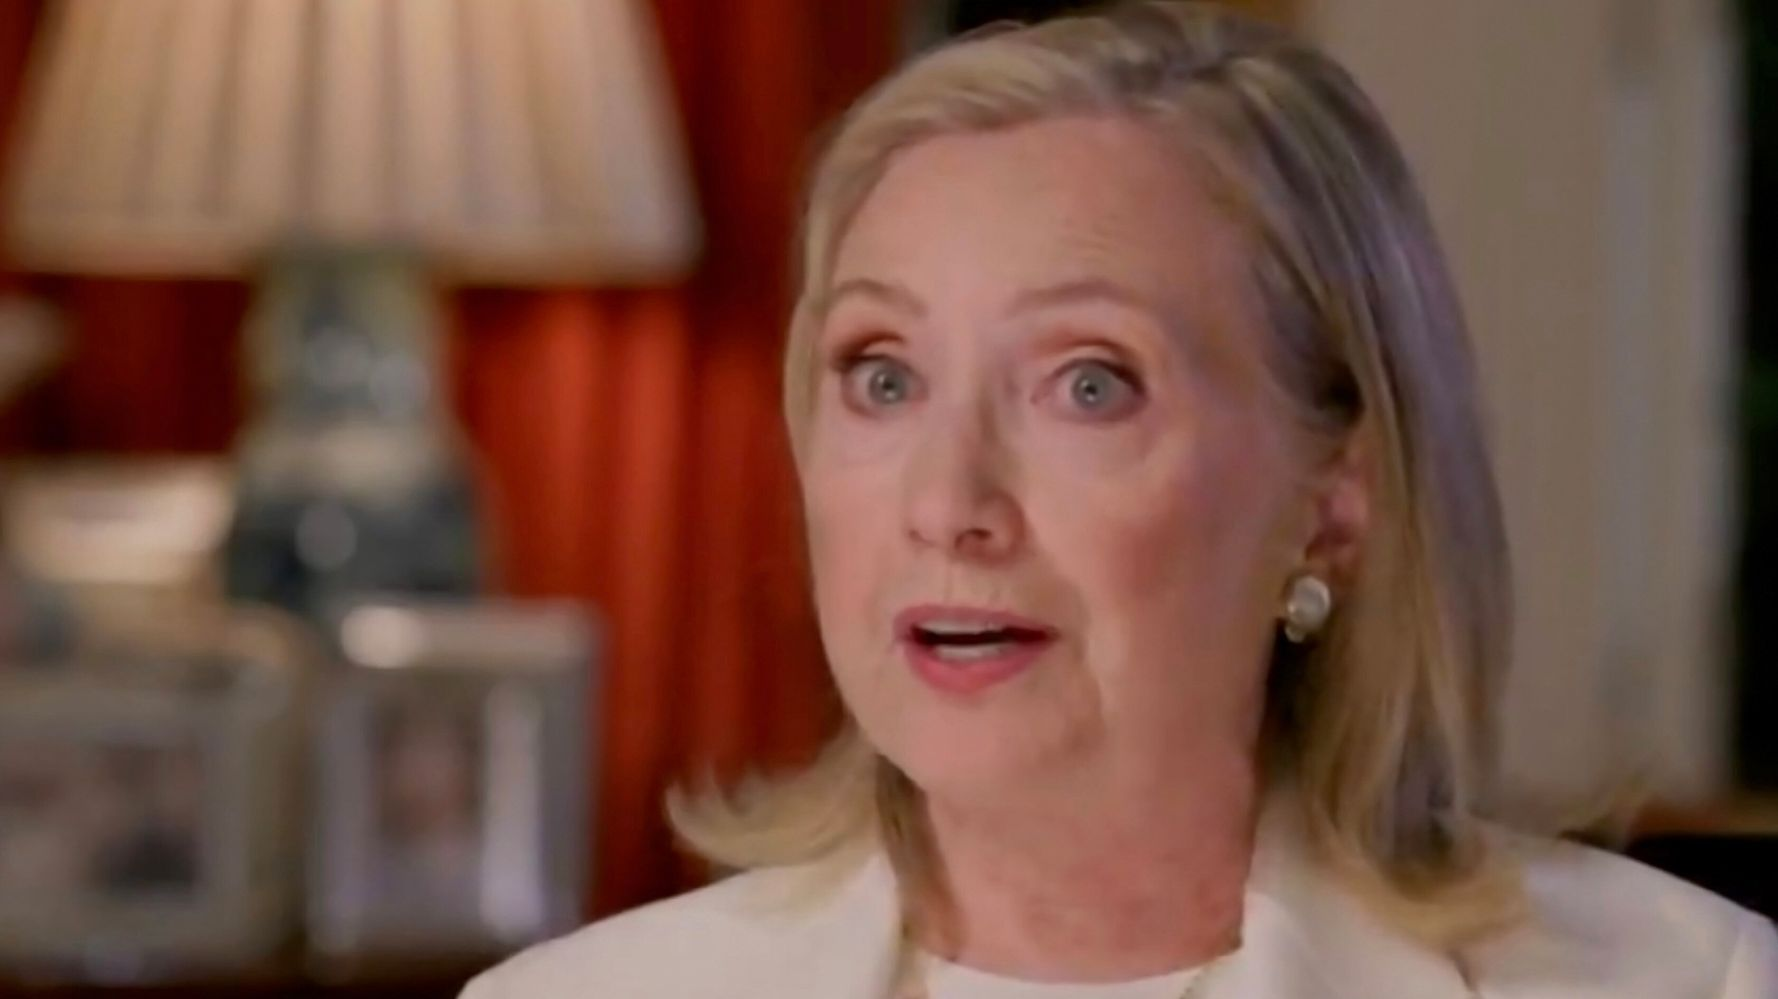 Hillary Clinton Backs Impeaching Trump, Calls For Harsher Action On Extremists